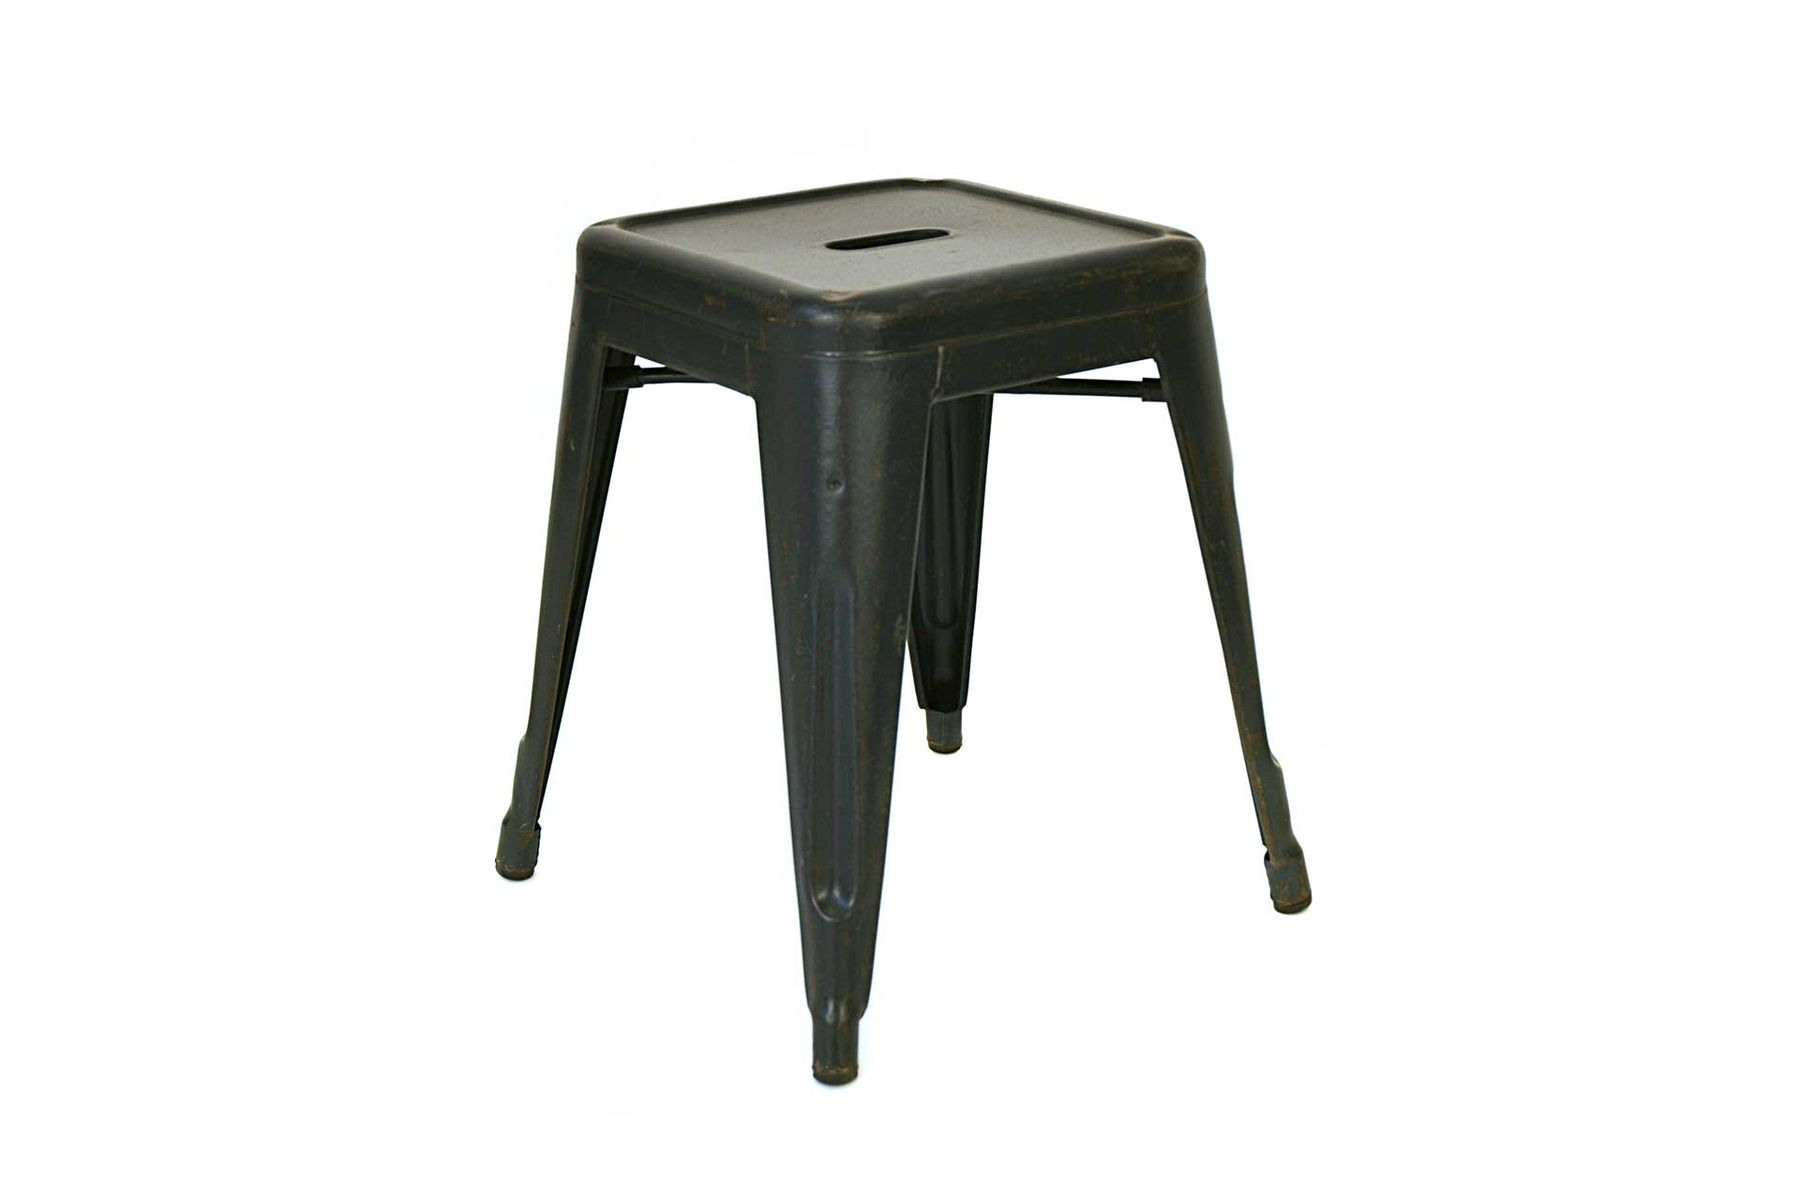 Xavier Pauchard vintage stool by xavier pauchard for tolix for sale at pamono